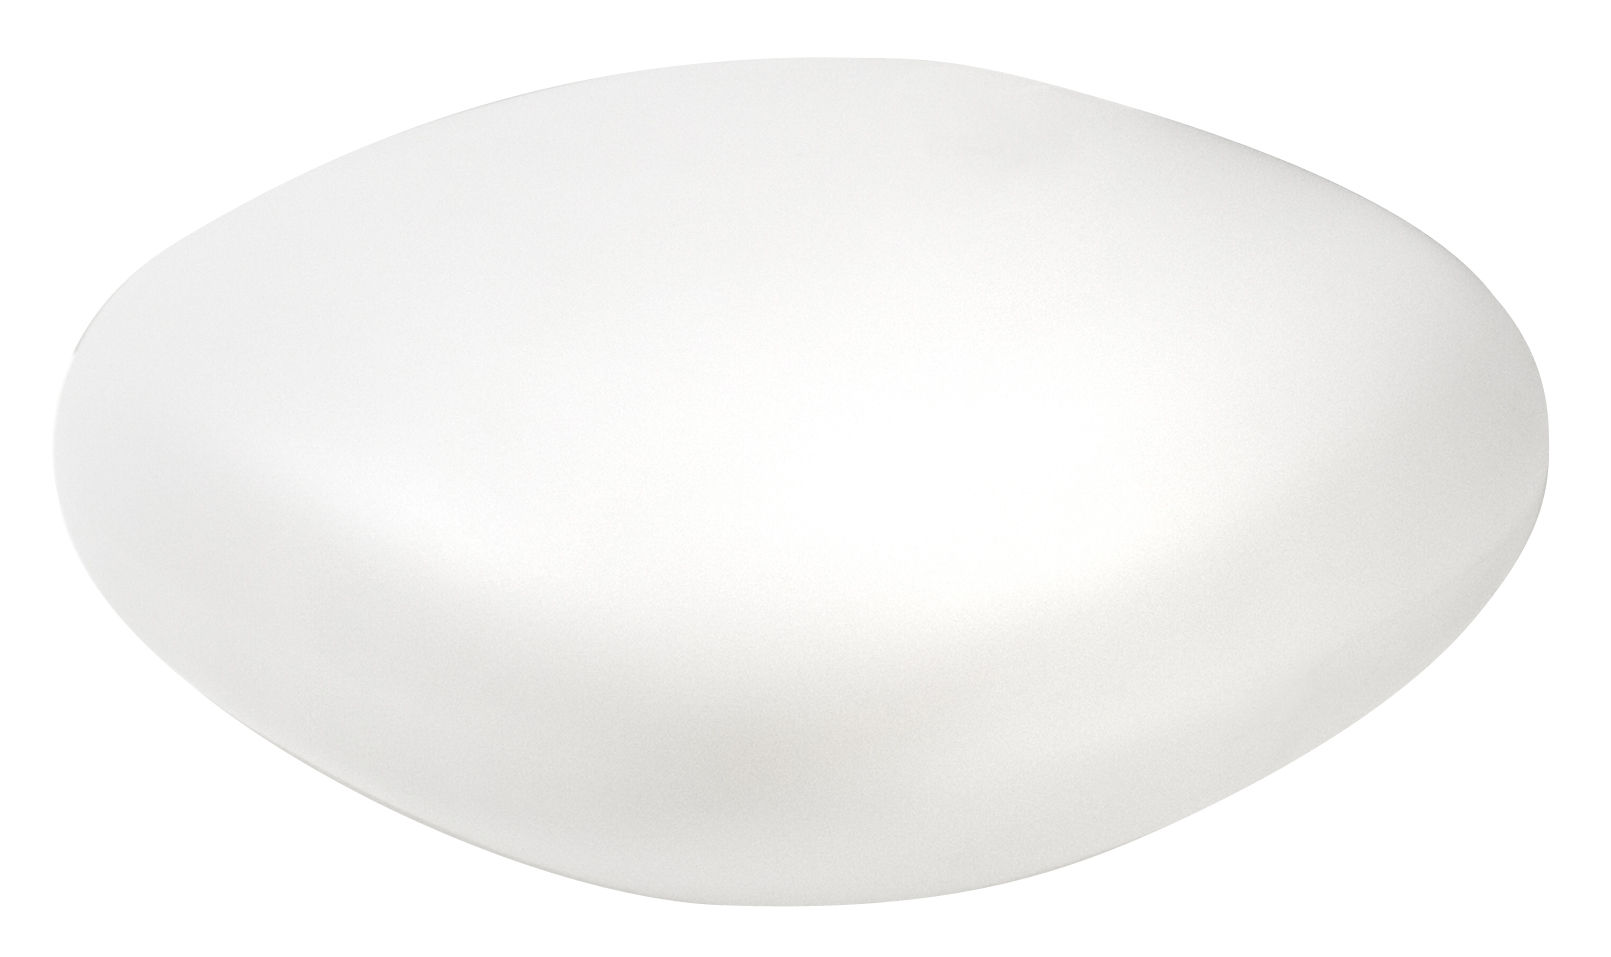 Furniture - Coffee Tables - Chubby Low Coffee table by Slide - White - Polythene